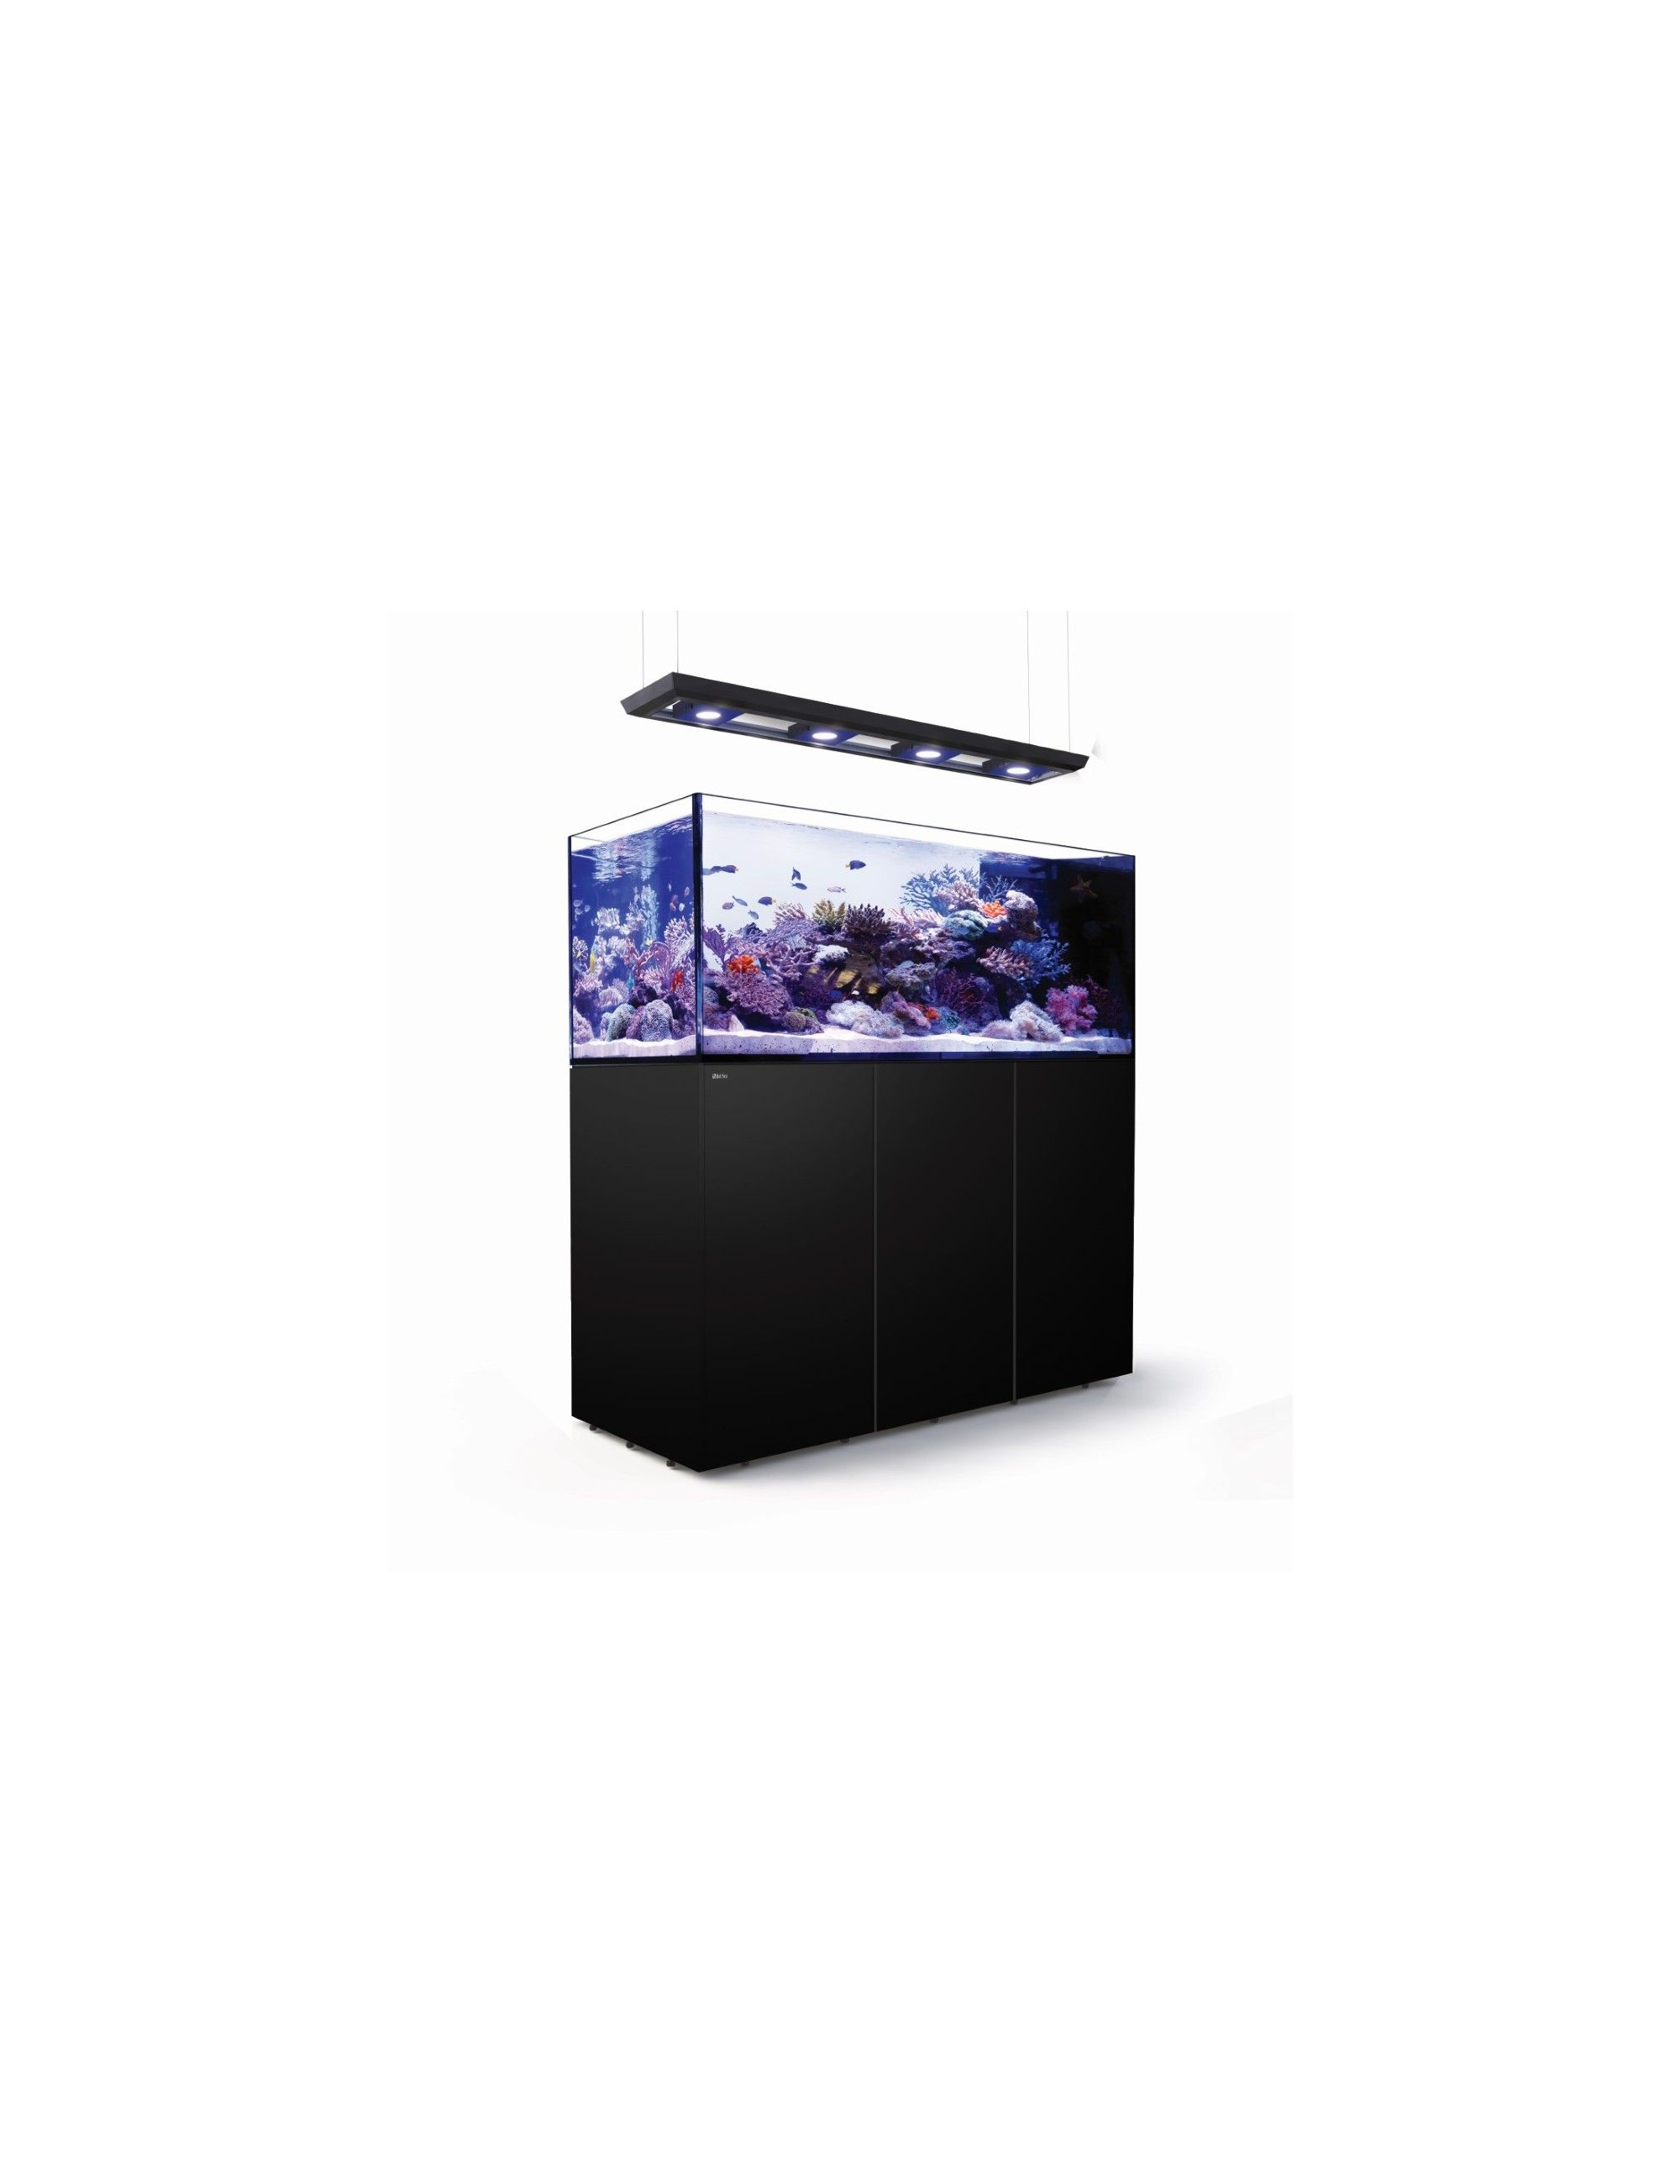 RED SEA - Reefer Peninsula Deluxe - P650 - Noir - (4 ReefLED, rampe suspendue)